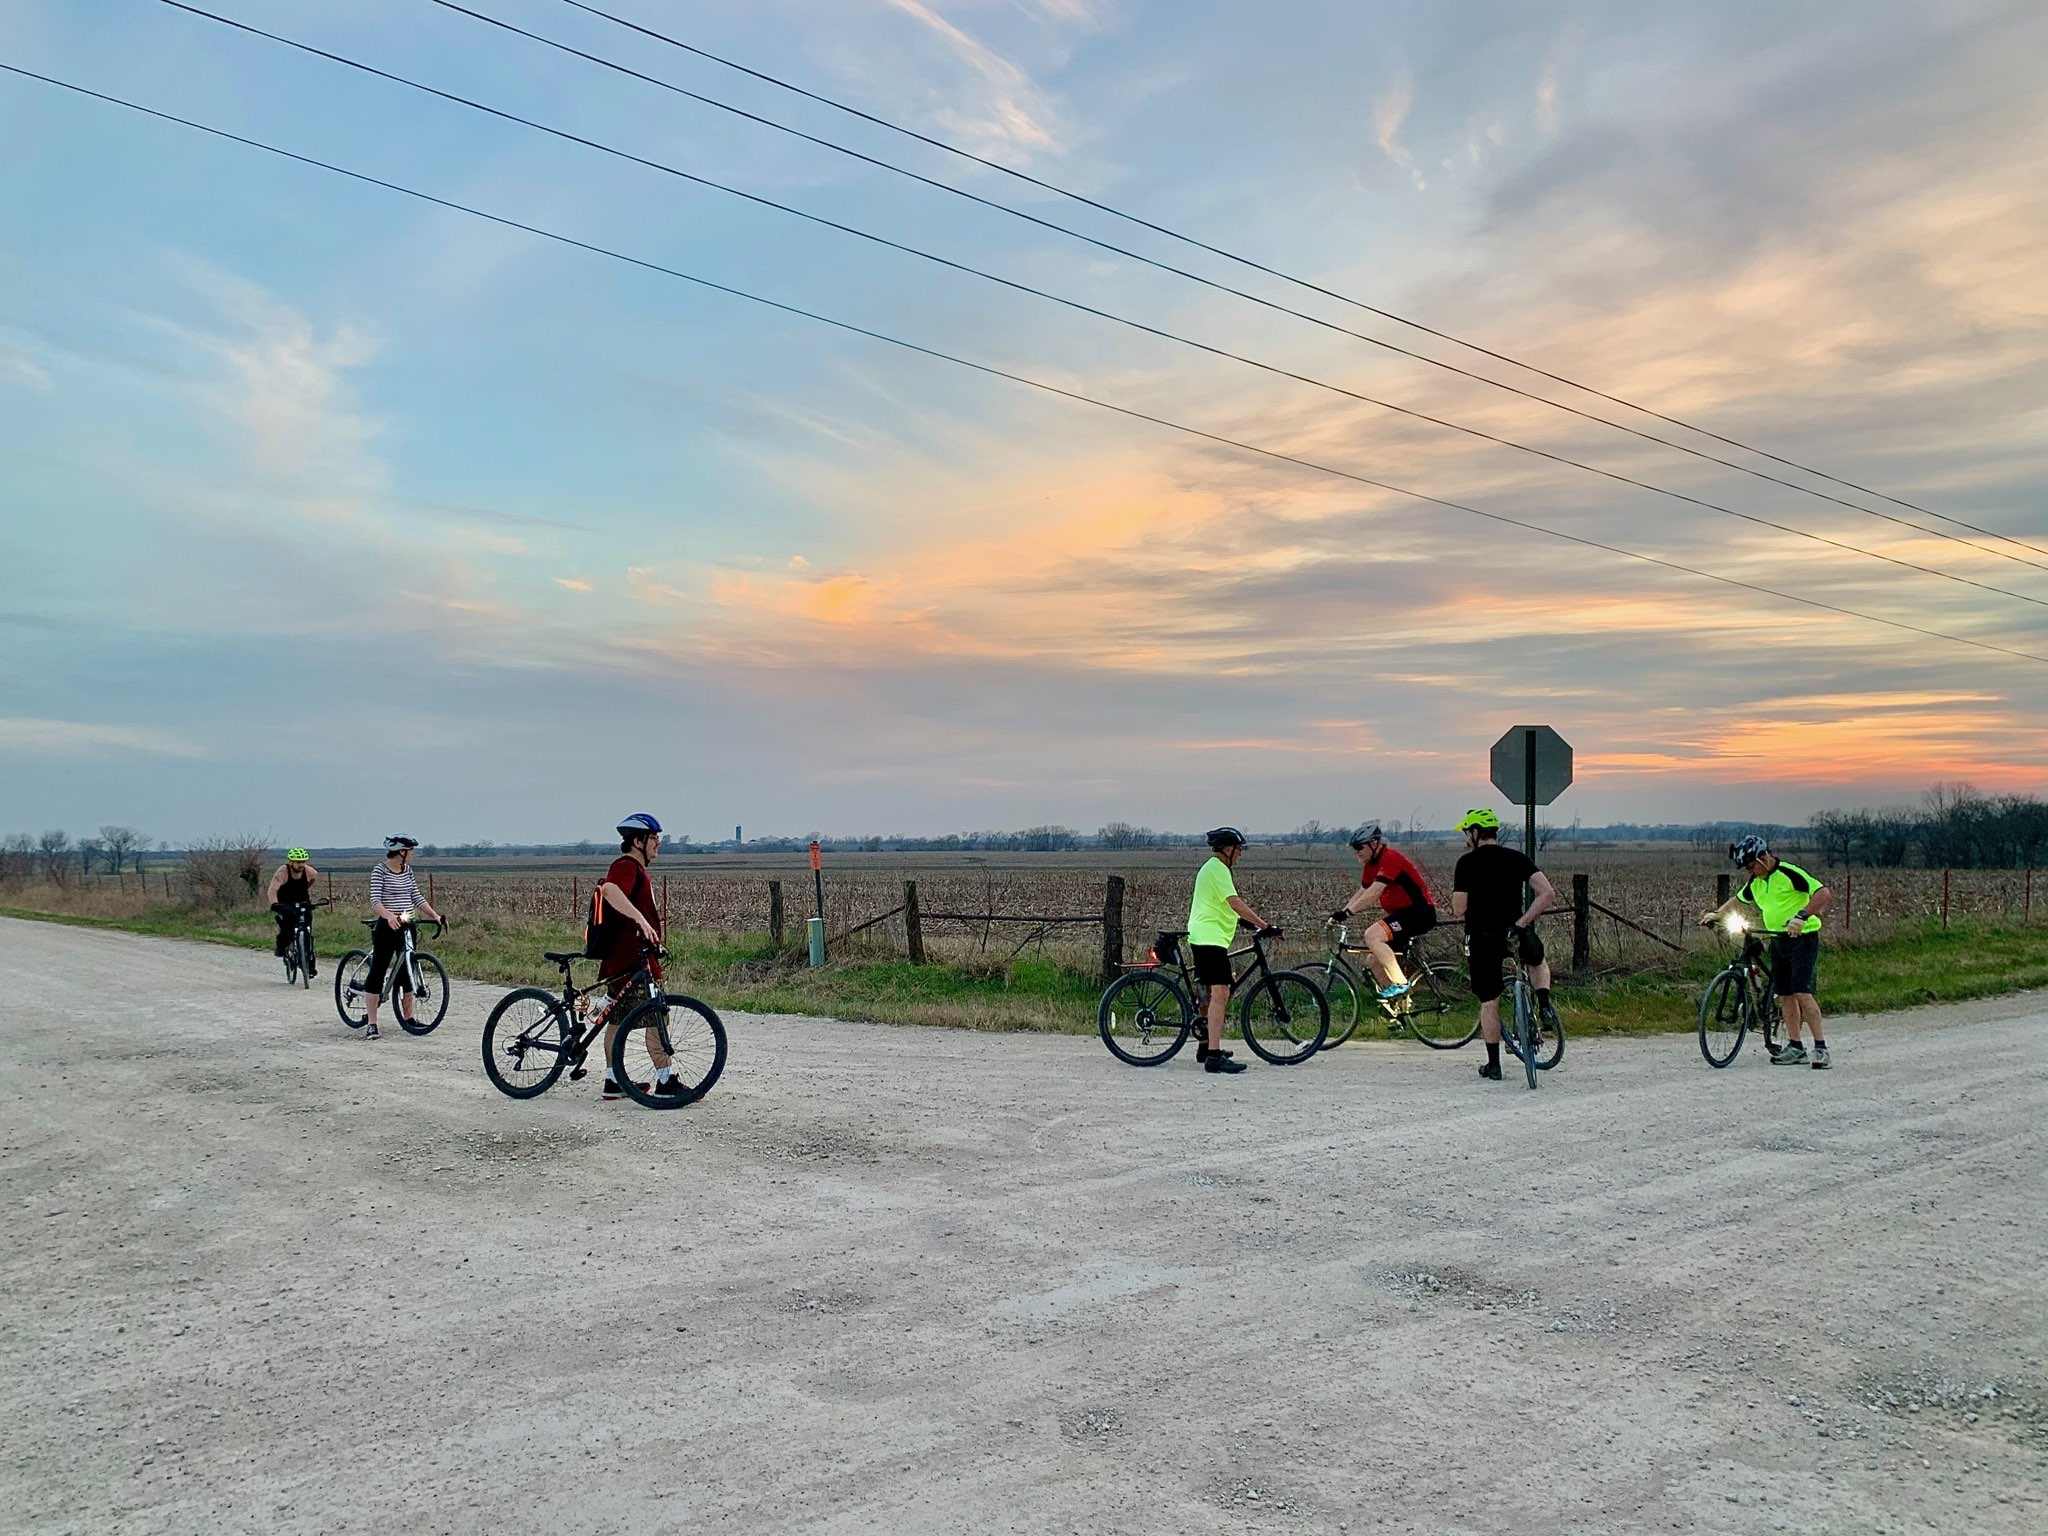 Community! Photo of a group of bicyclists resting at a crossroads of gravel roads at sunset.